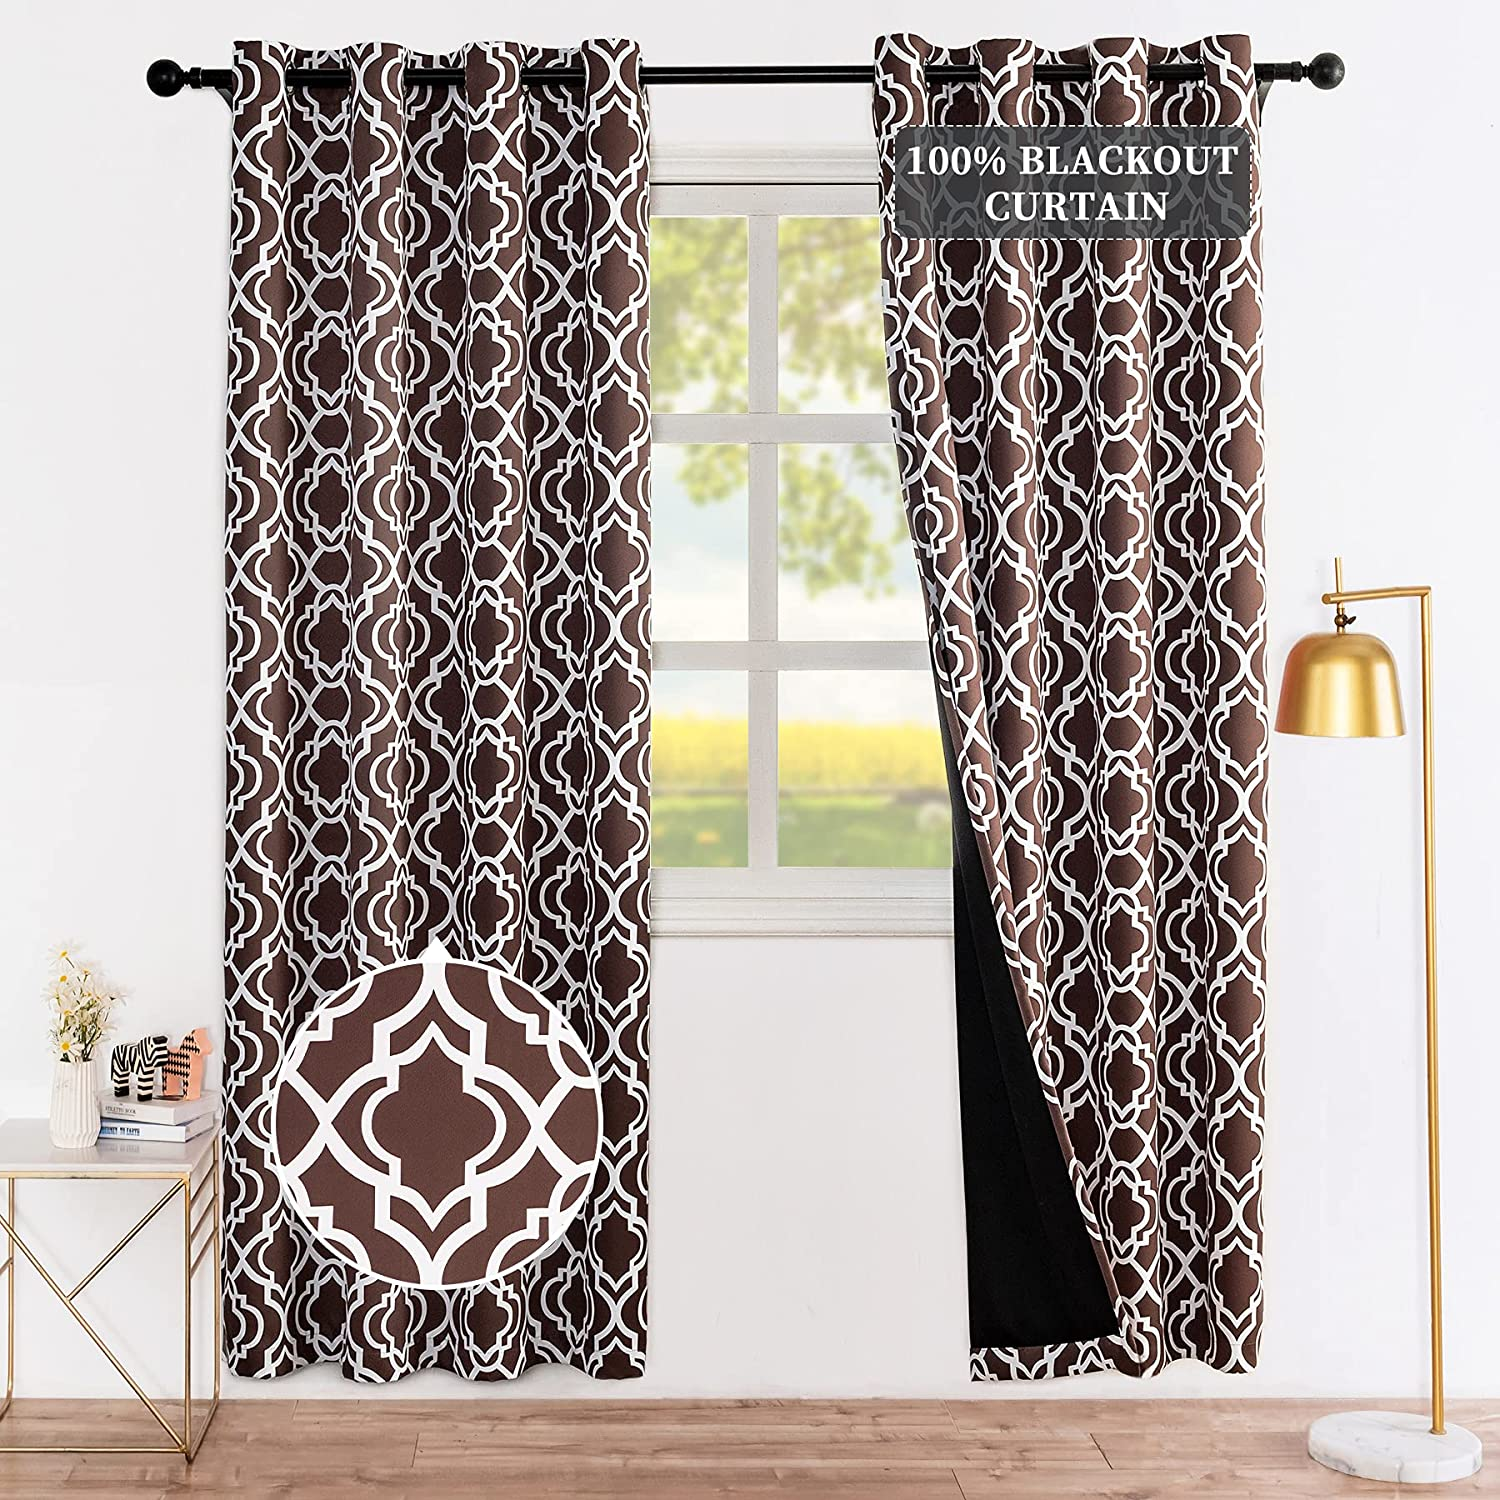 Drewin Blackout Curtains for Bedroom 67% OFF of fixed price Length Curt Inches 63 Brown Max 86% OFF